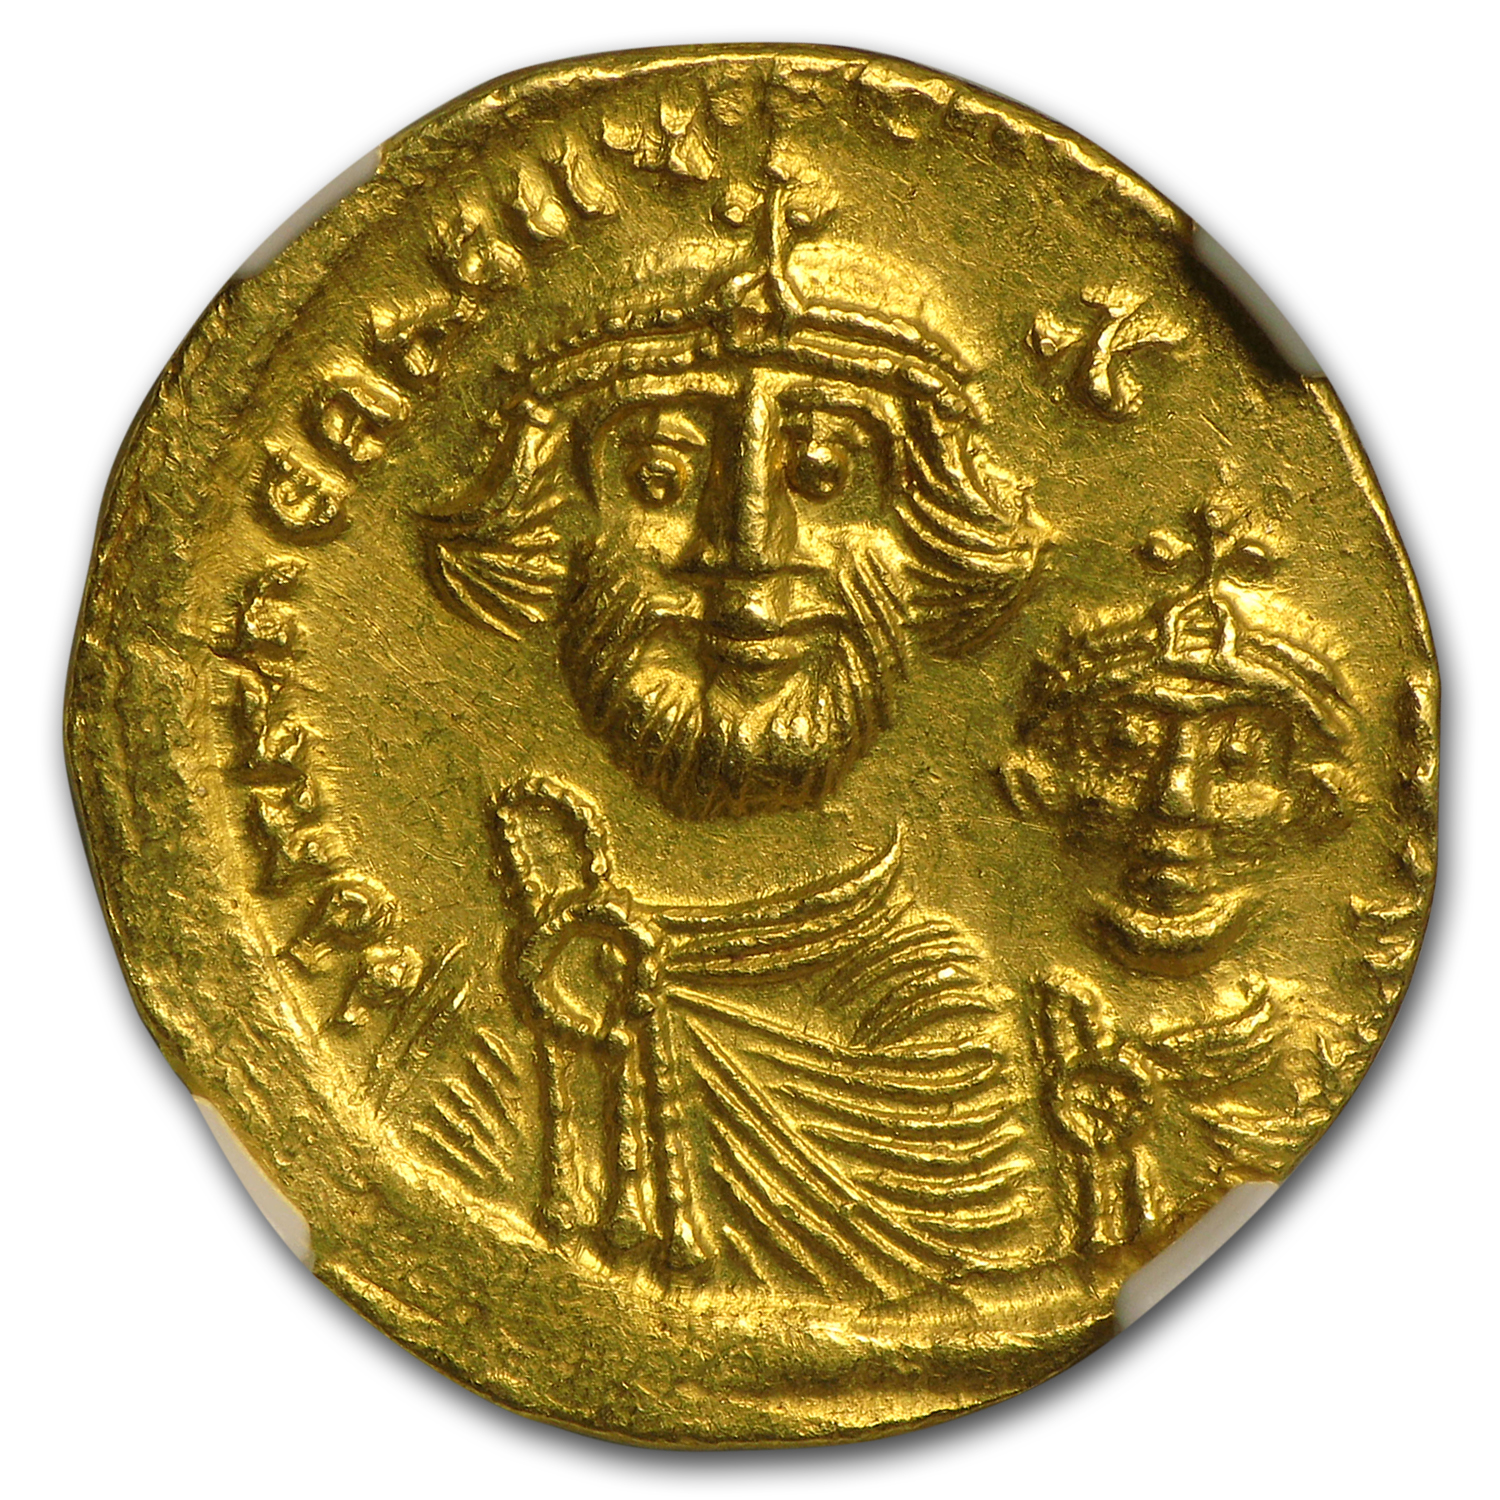 Byzantine Gold Solidus Emperor Heraclius (613-641 AD) MS NGC